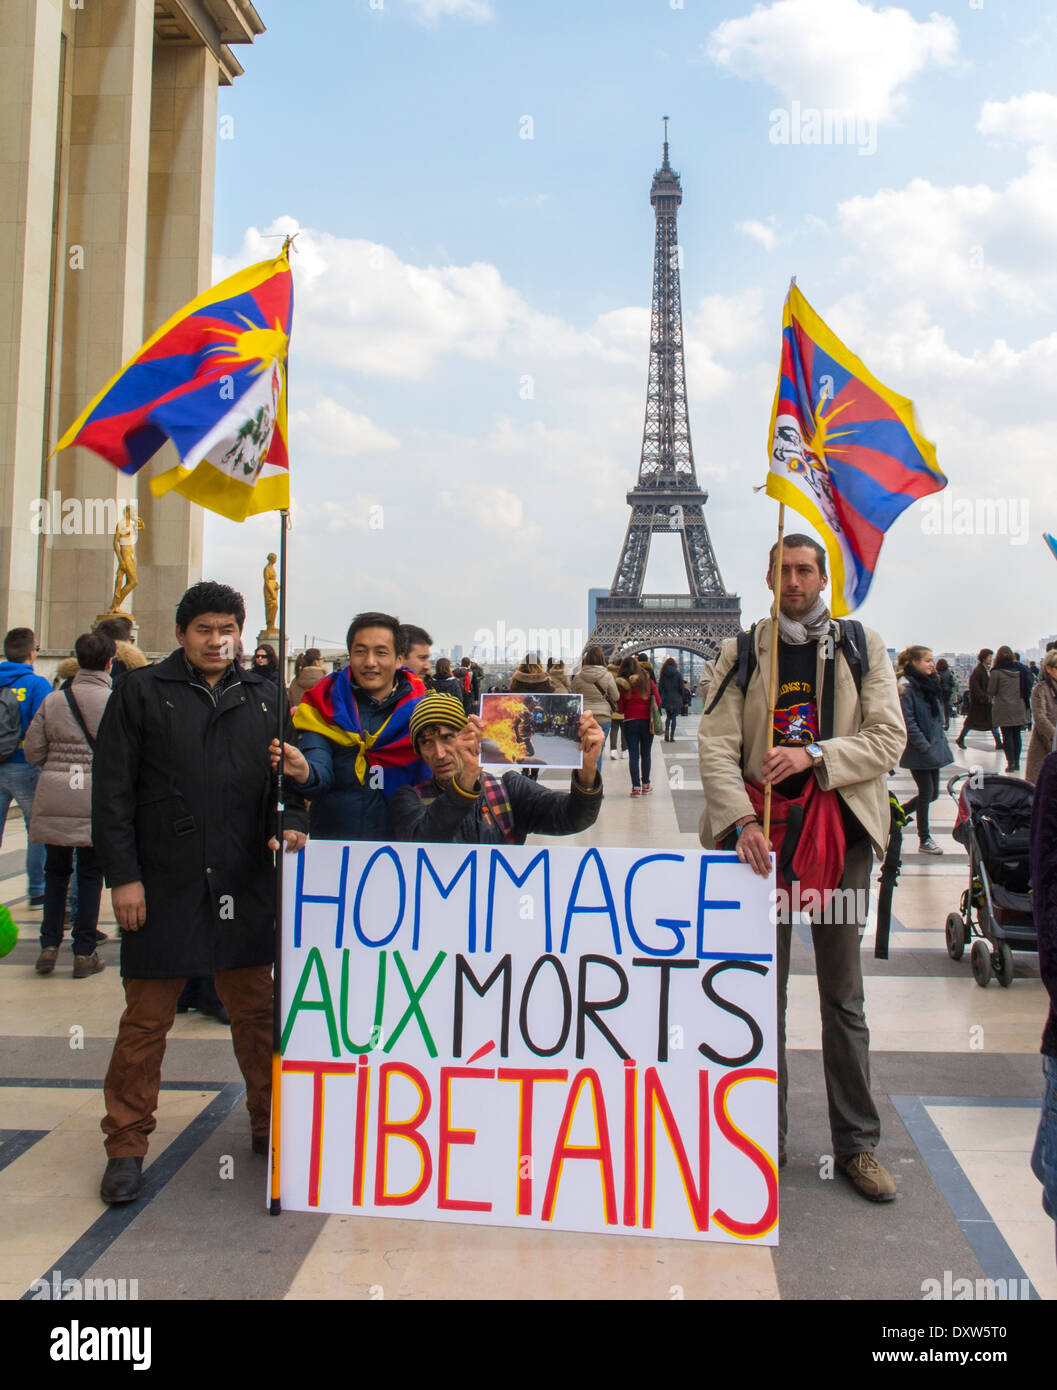 The Tibetan, Taiwanese Ethnic Communities of France, Demonstration called for French citizens to mobilize during the visit of Chinese President in Paris, on Place of the Rights of Man. Group Holding Protest signs Stock Photo